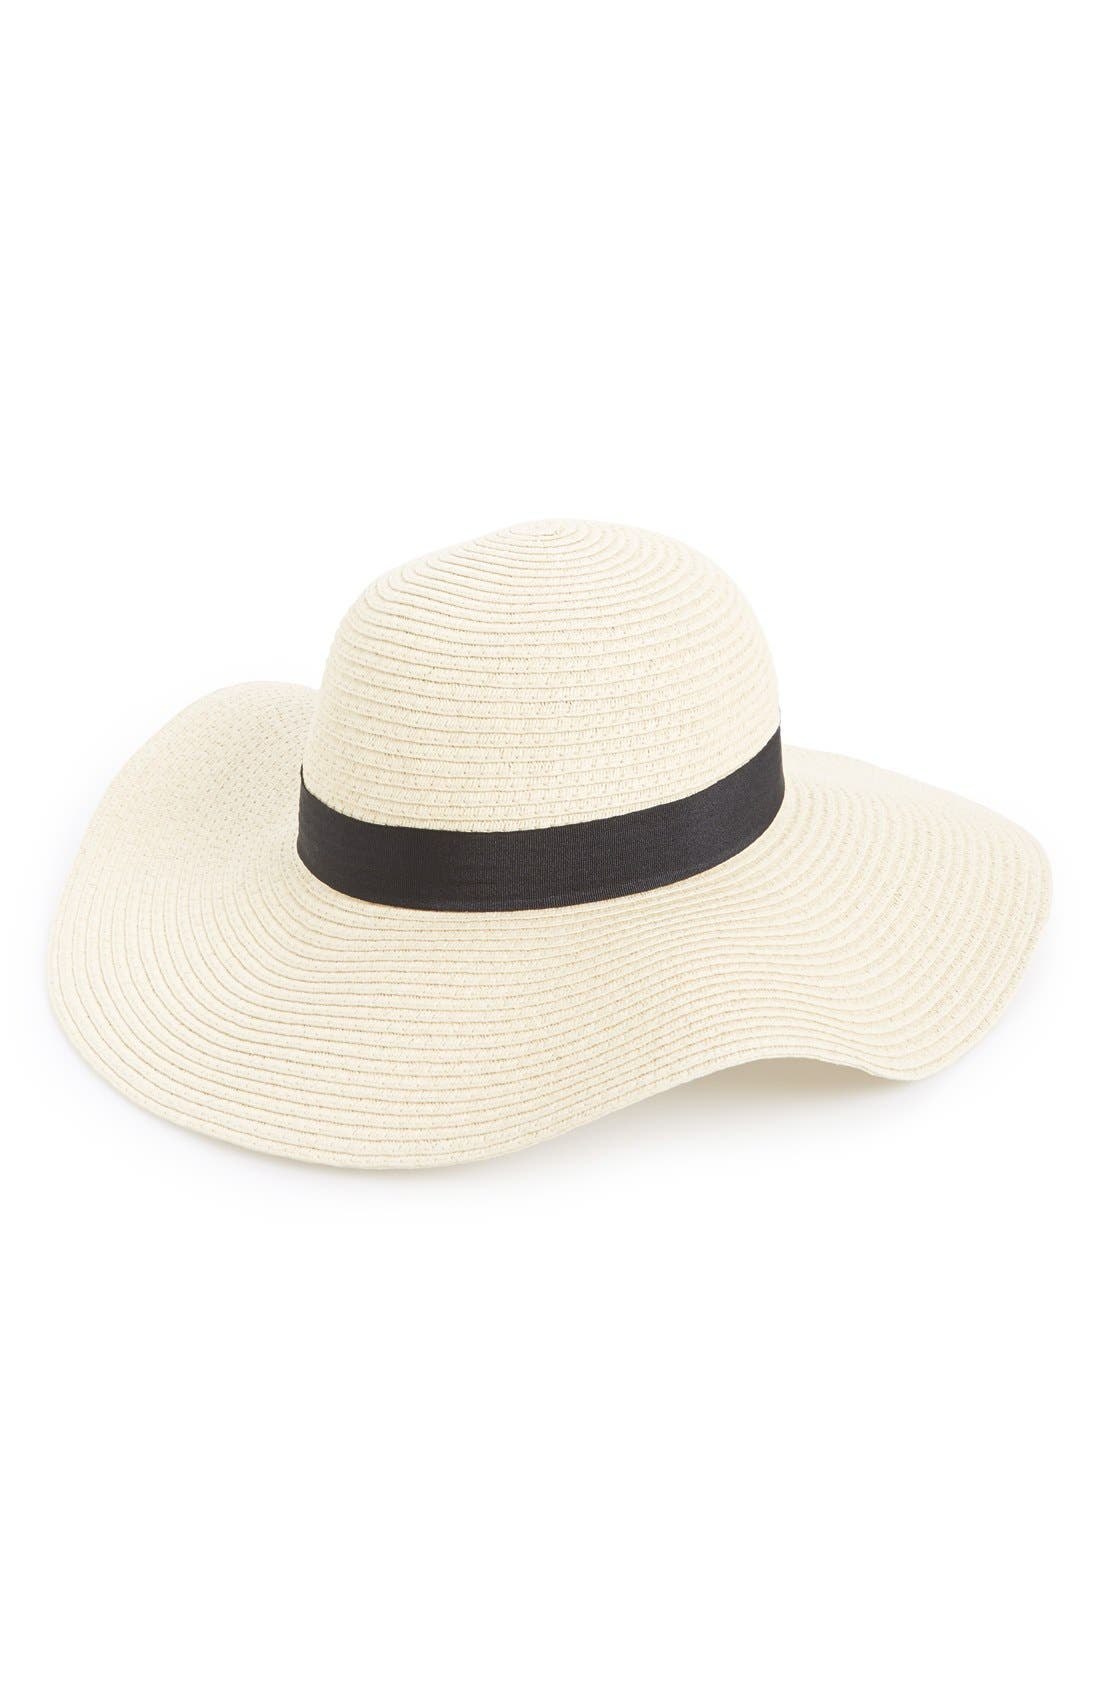 Floppy Straw Hat,                         Main,                         color, Natural